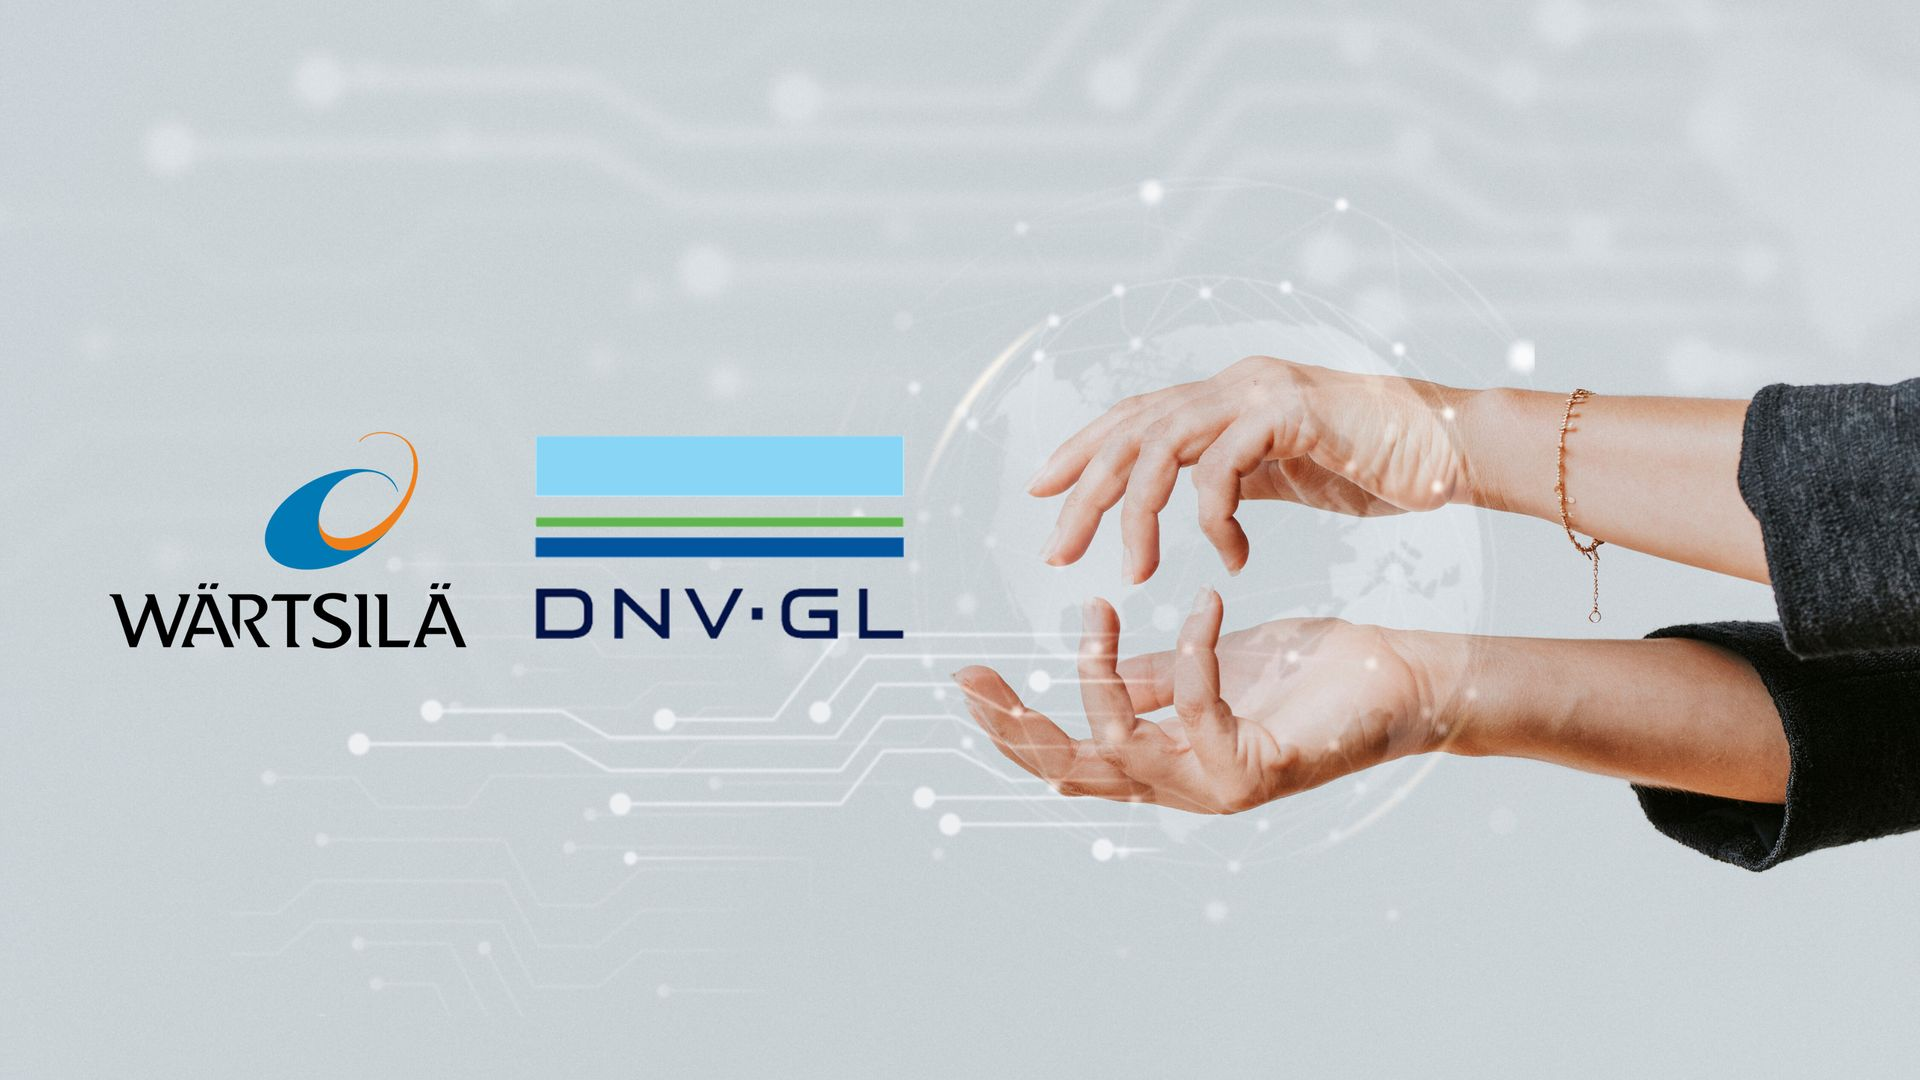 Wärtsilä-DNV GL digital co-op